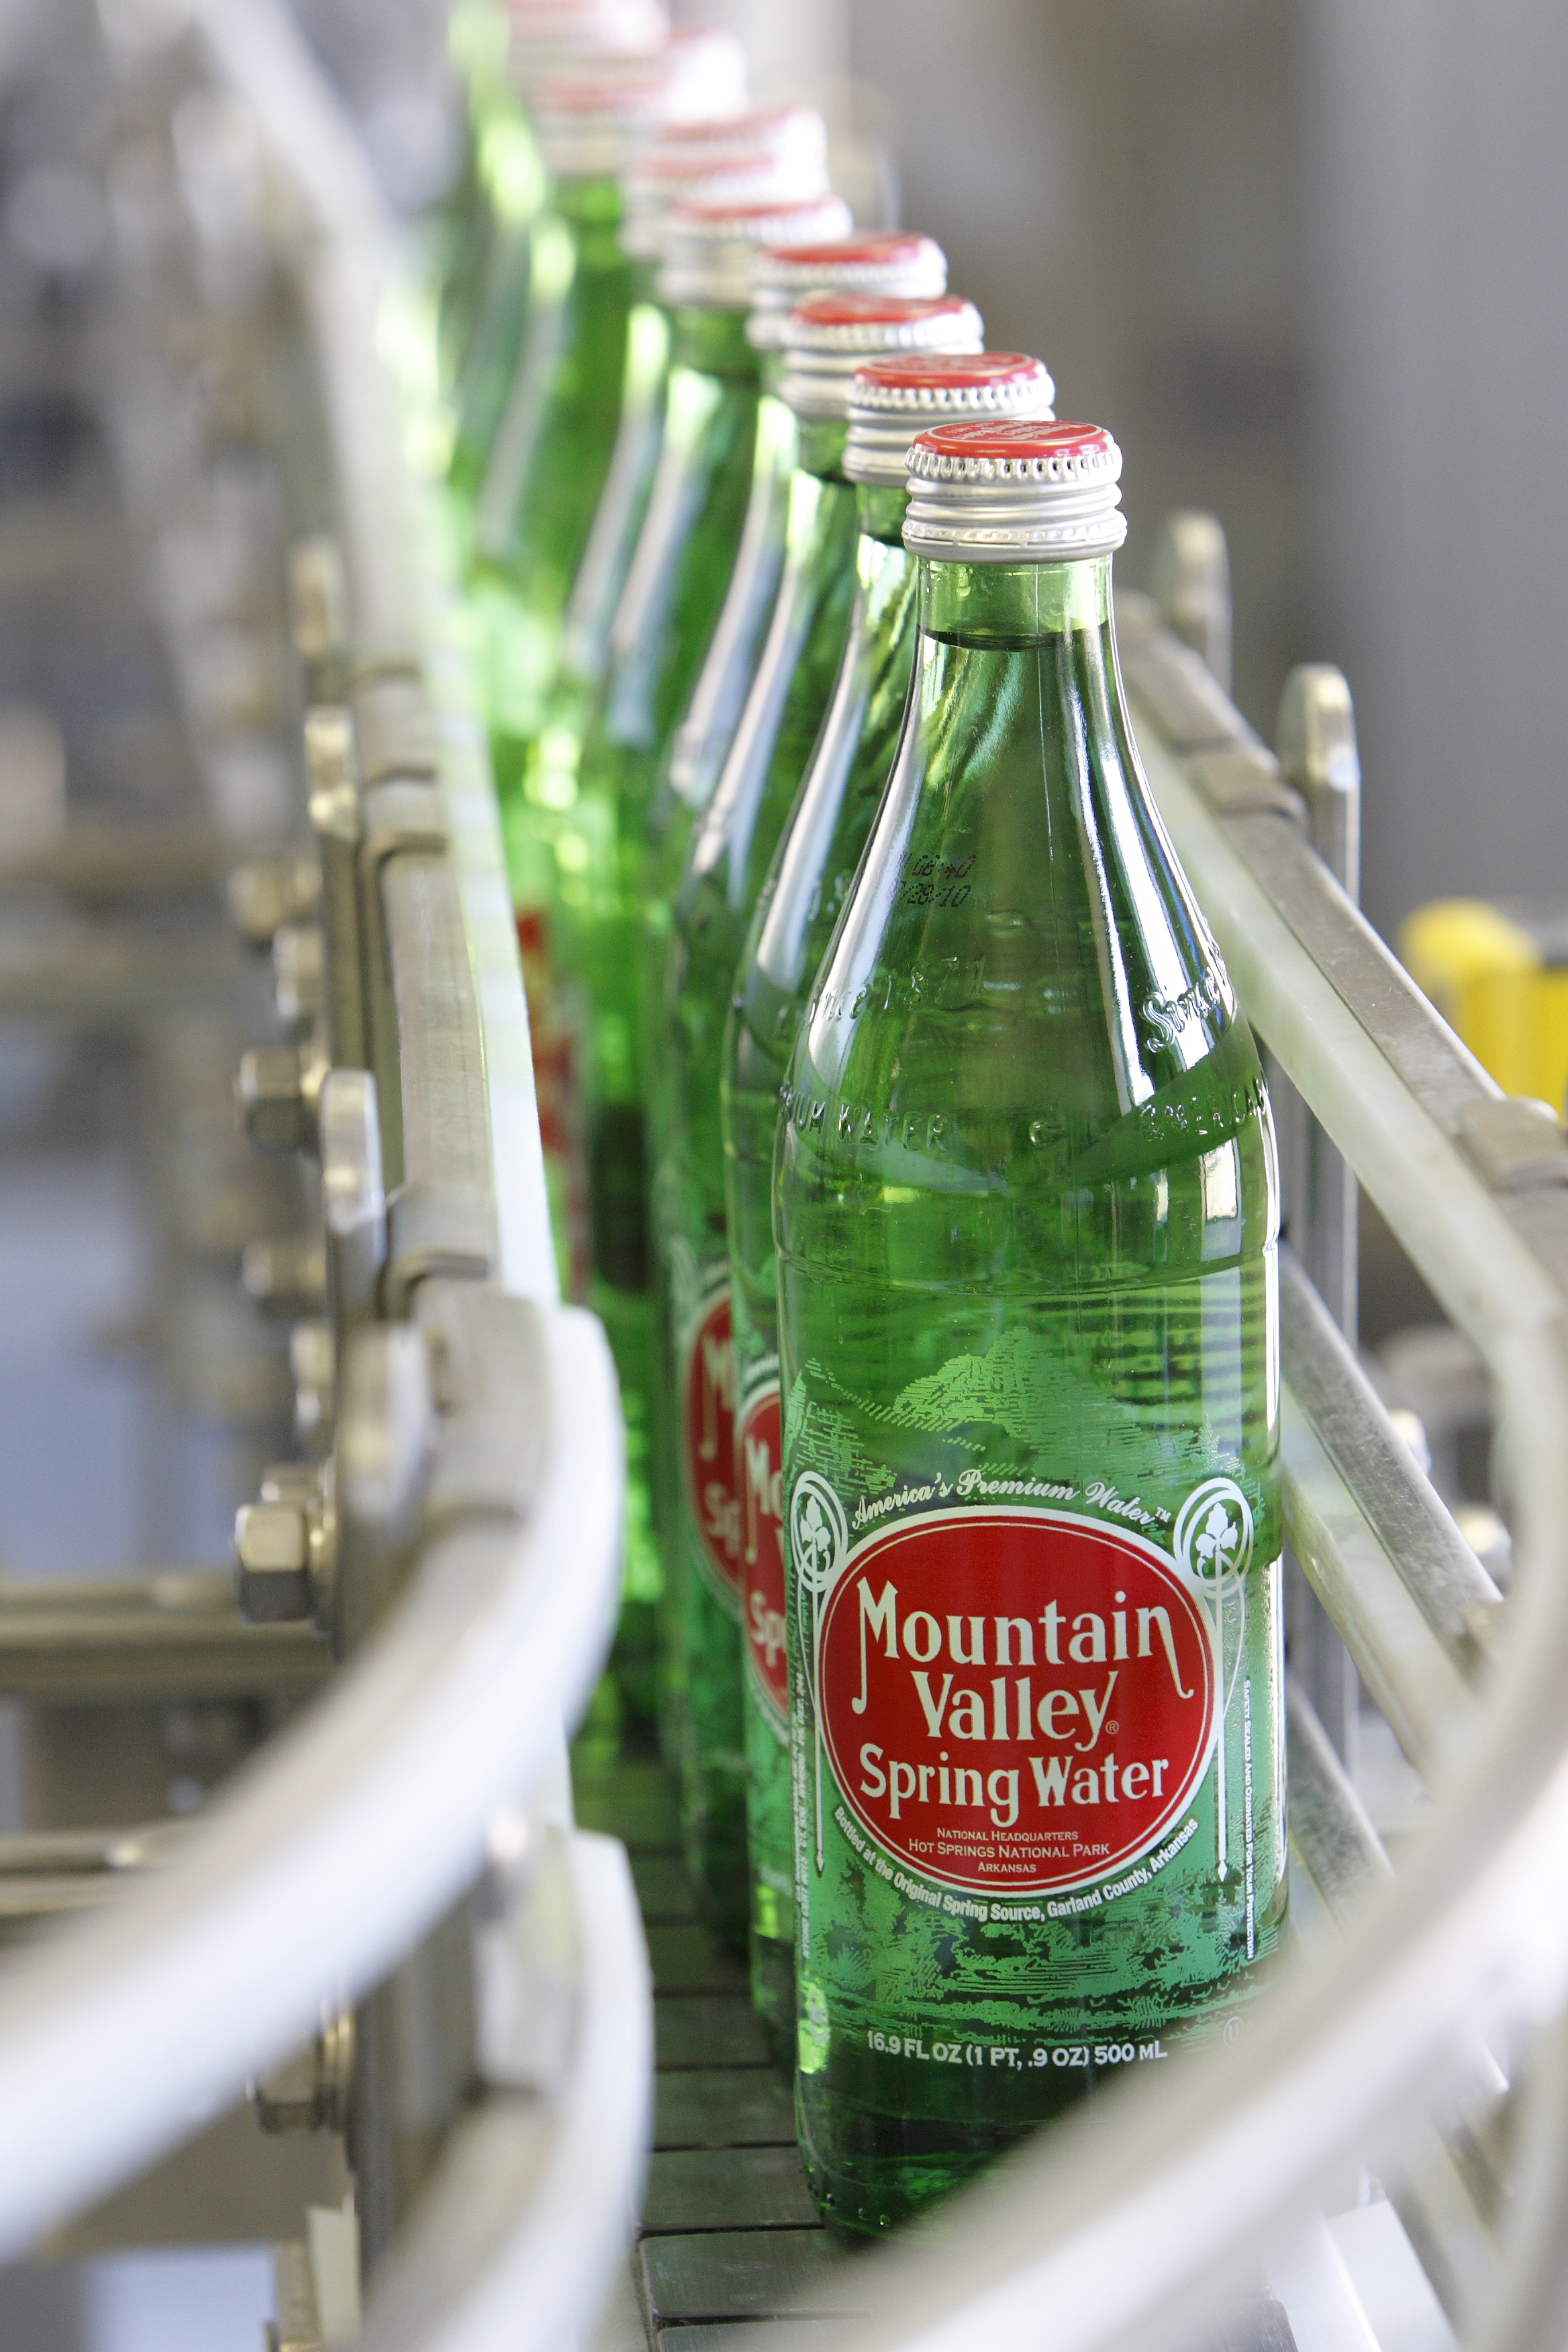 Mountain Valley Spring Water - Wikipedia